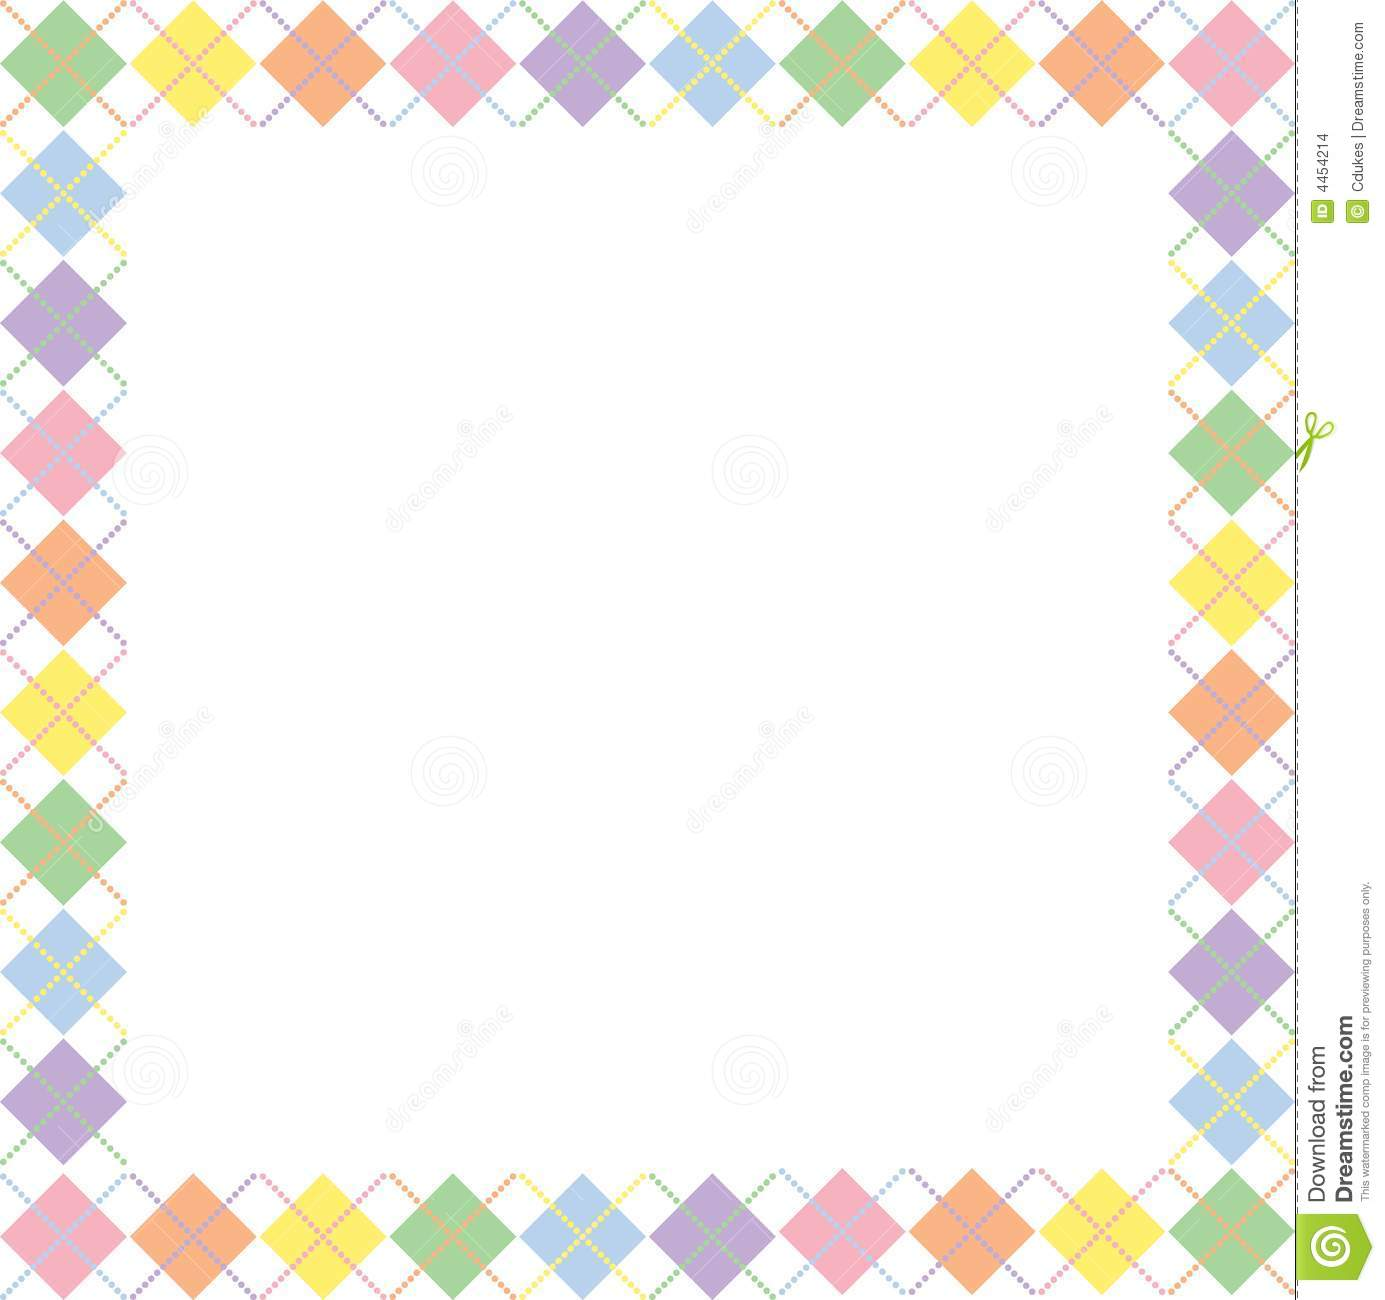 Stock Images Pastel Rainbow Argyle Border Image4454214 on Yellow Objects Clipart For Kids